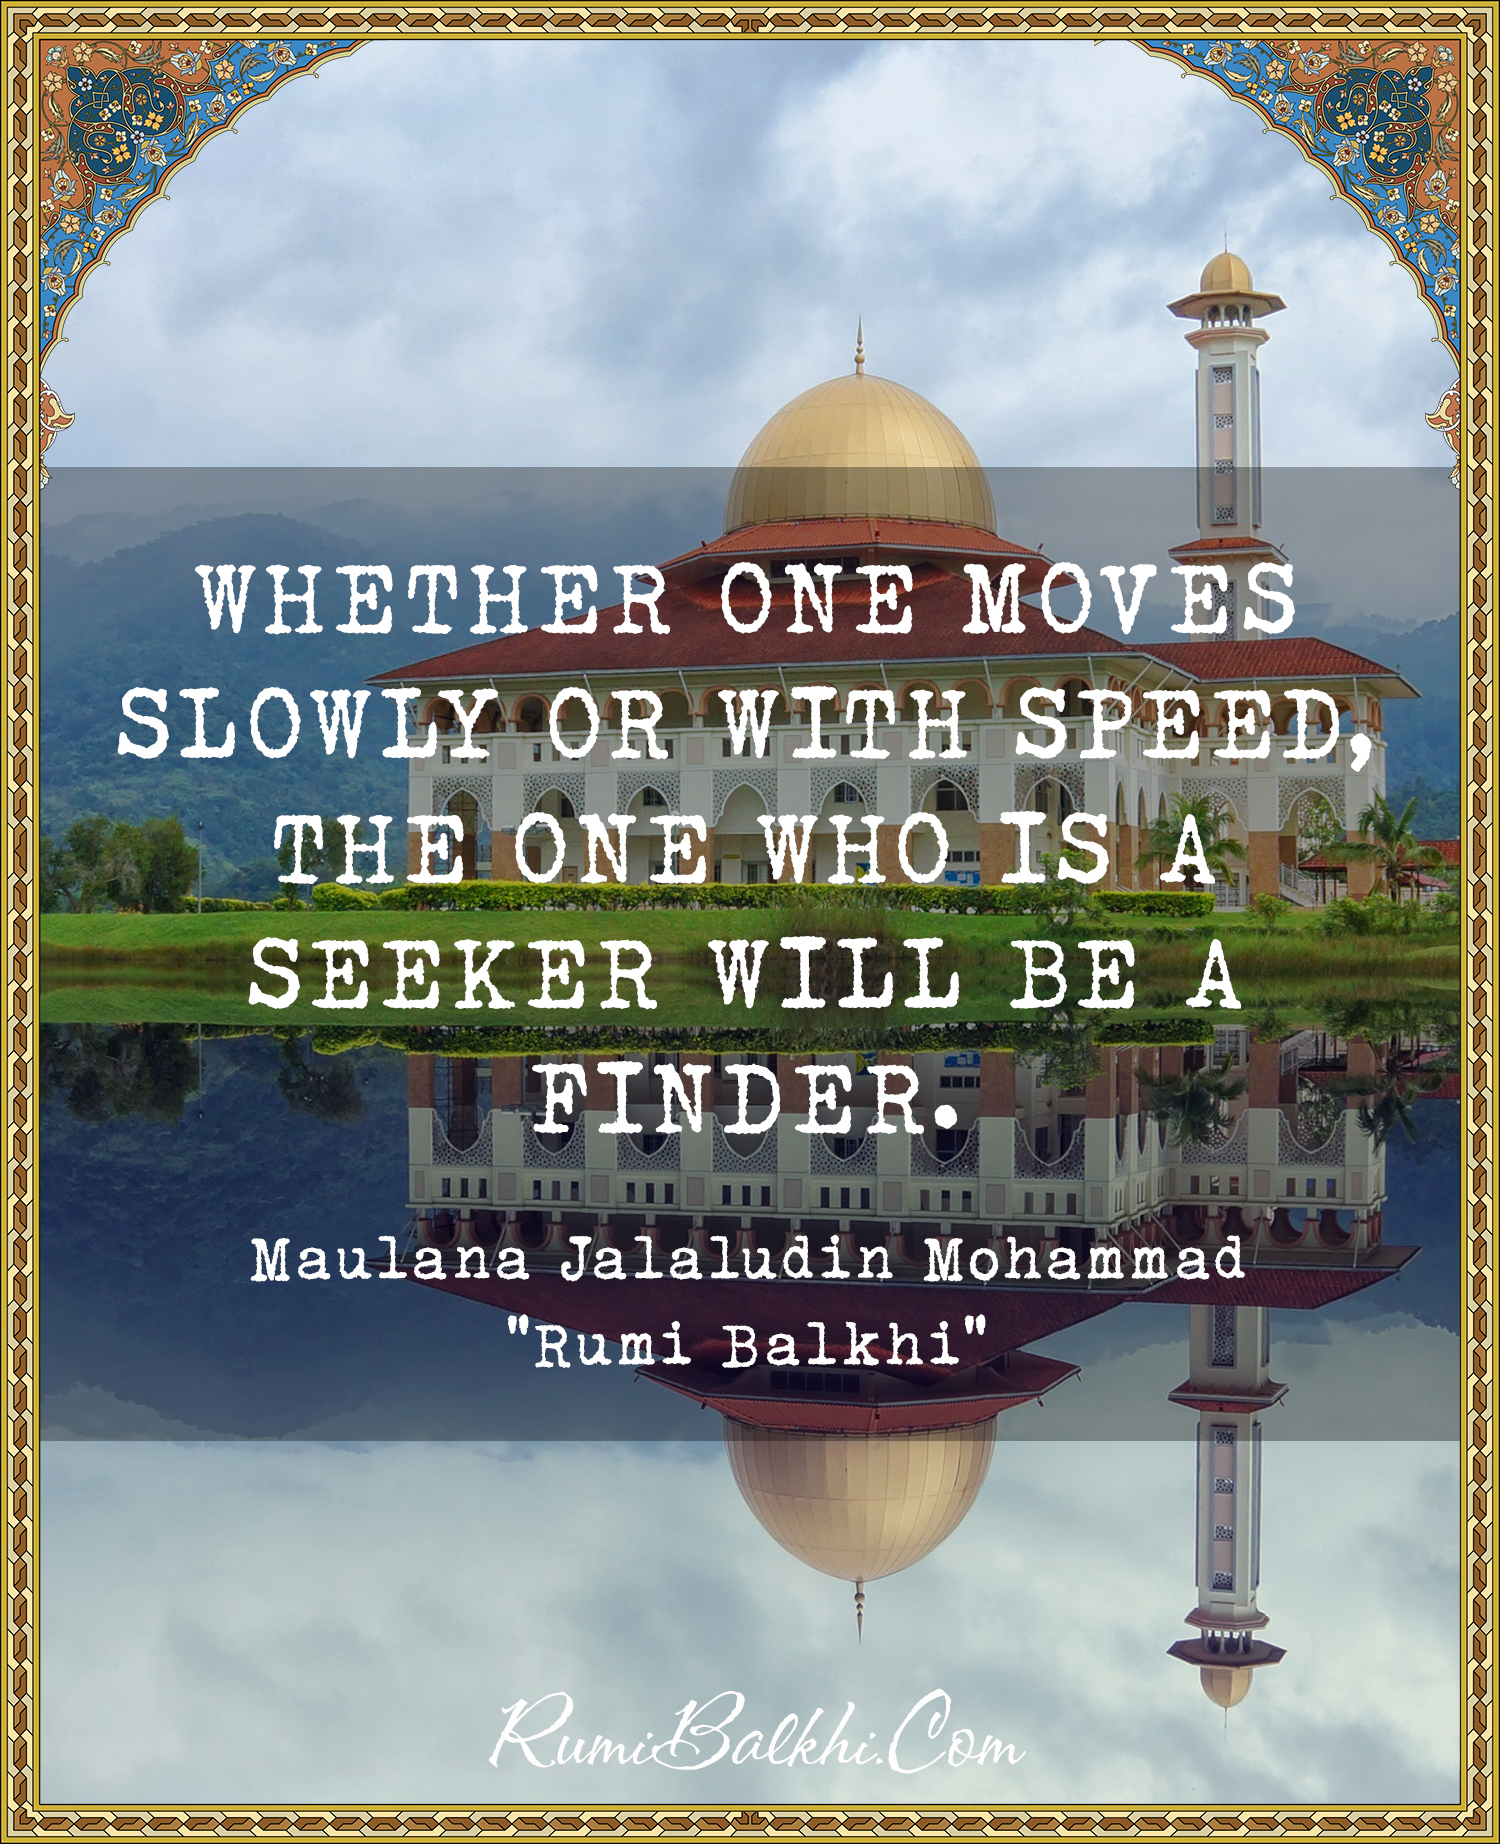 Whether One Moves Slowly Or With Speed The One Who Is A Seeker Will Be A Finder